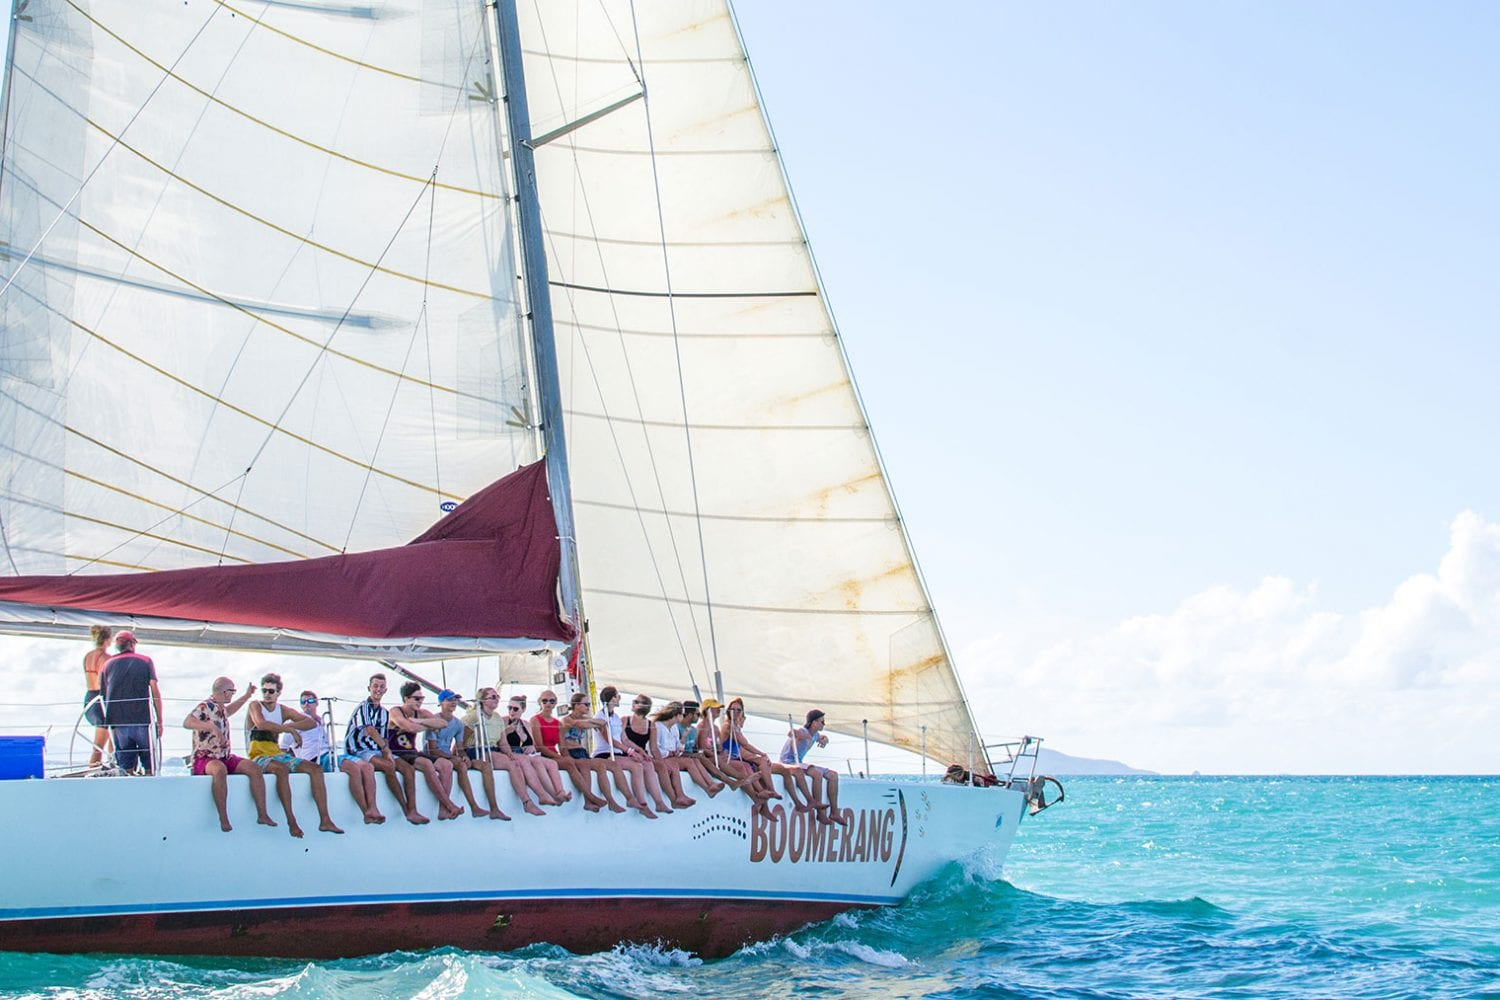 Boomerang---Sailing---passengers-on-the-side--Airlie-Beach-Tourism